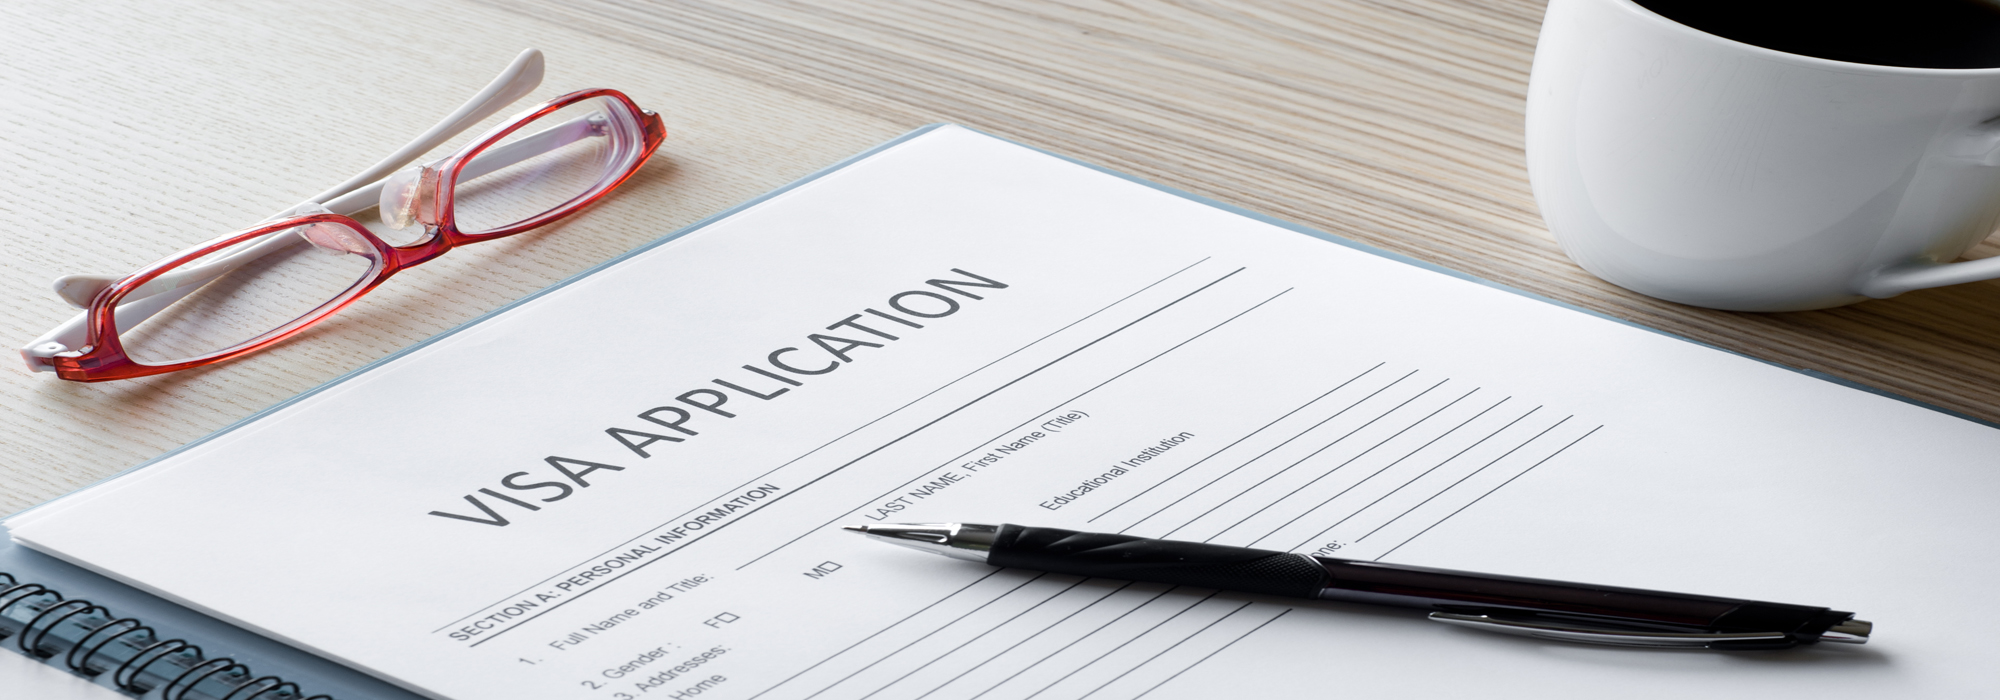 Guide to visa application requirements